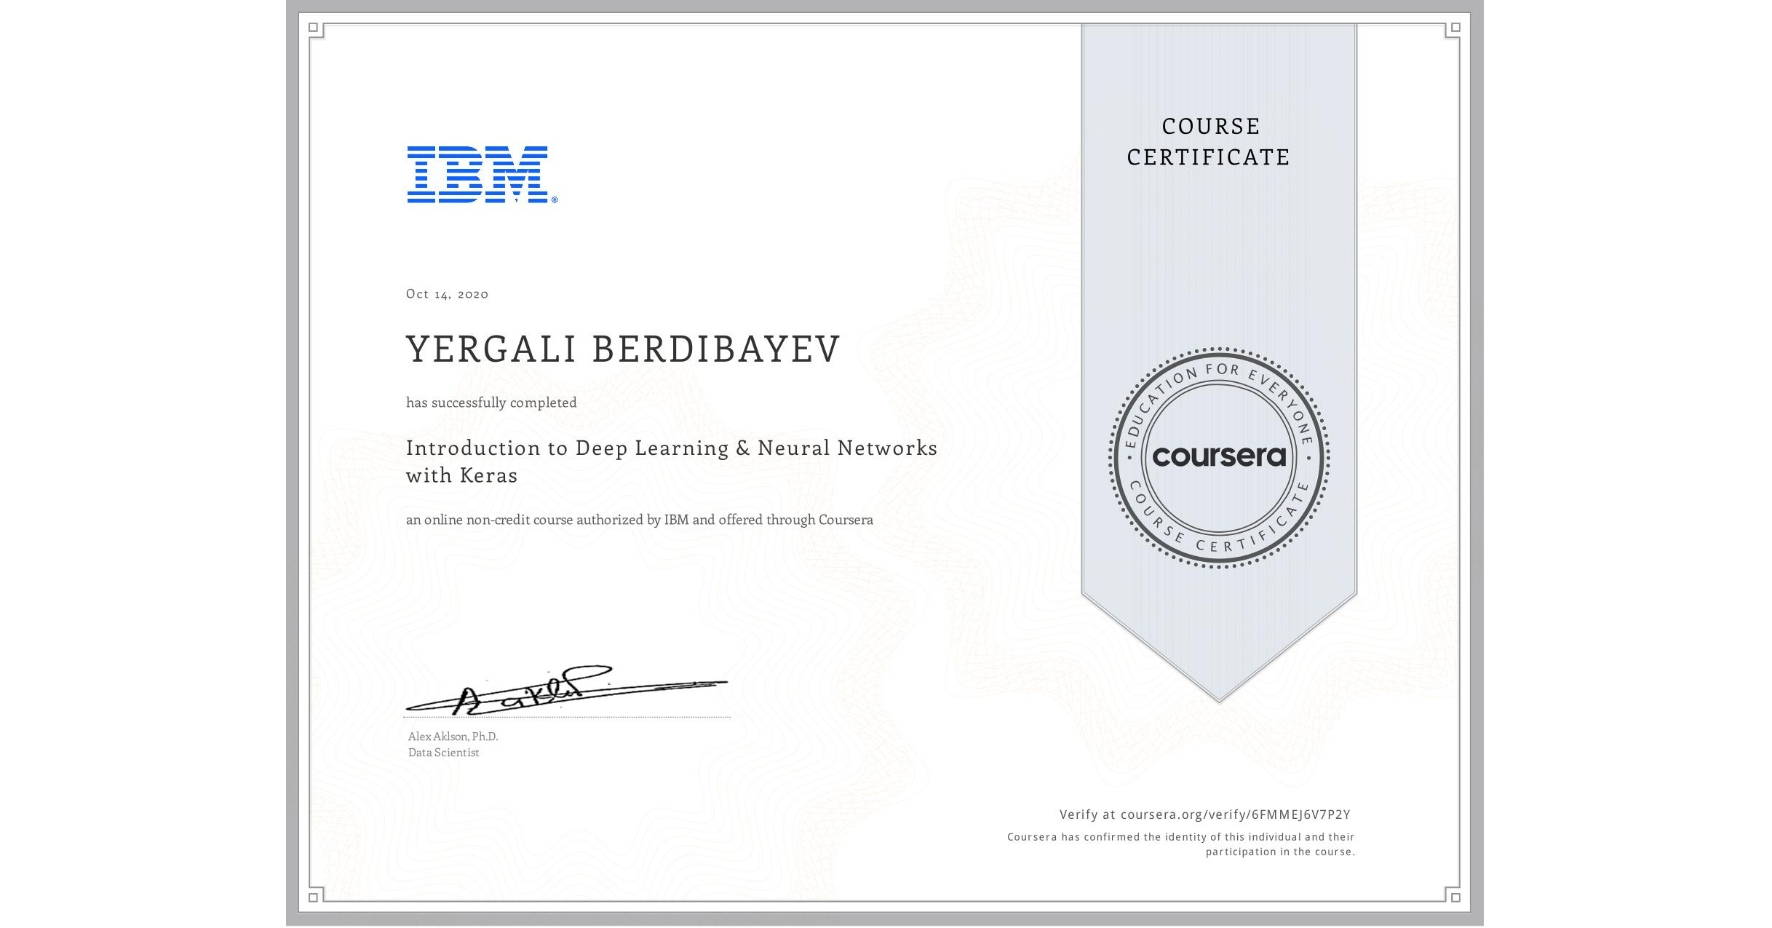 View certificate for Yergali Berdibayev, Introduction to Deep Learning & Neural Networks with Keras, an online non-credit course authorized by IBM and offered through Coursera